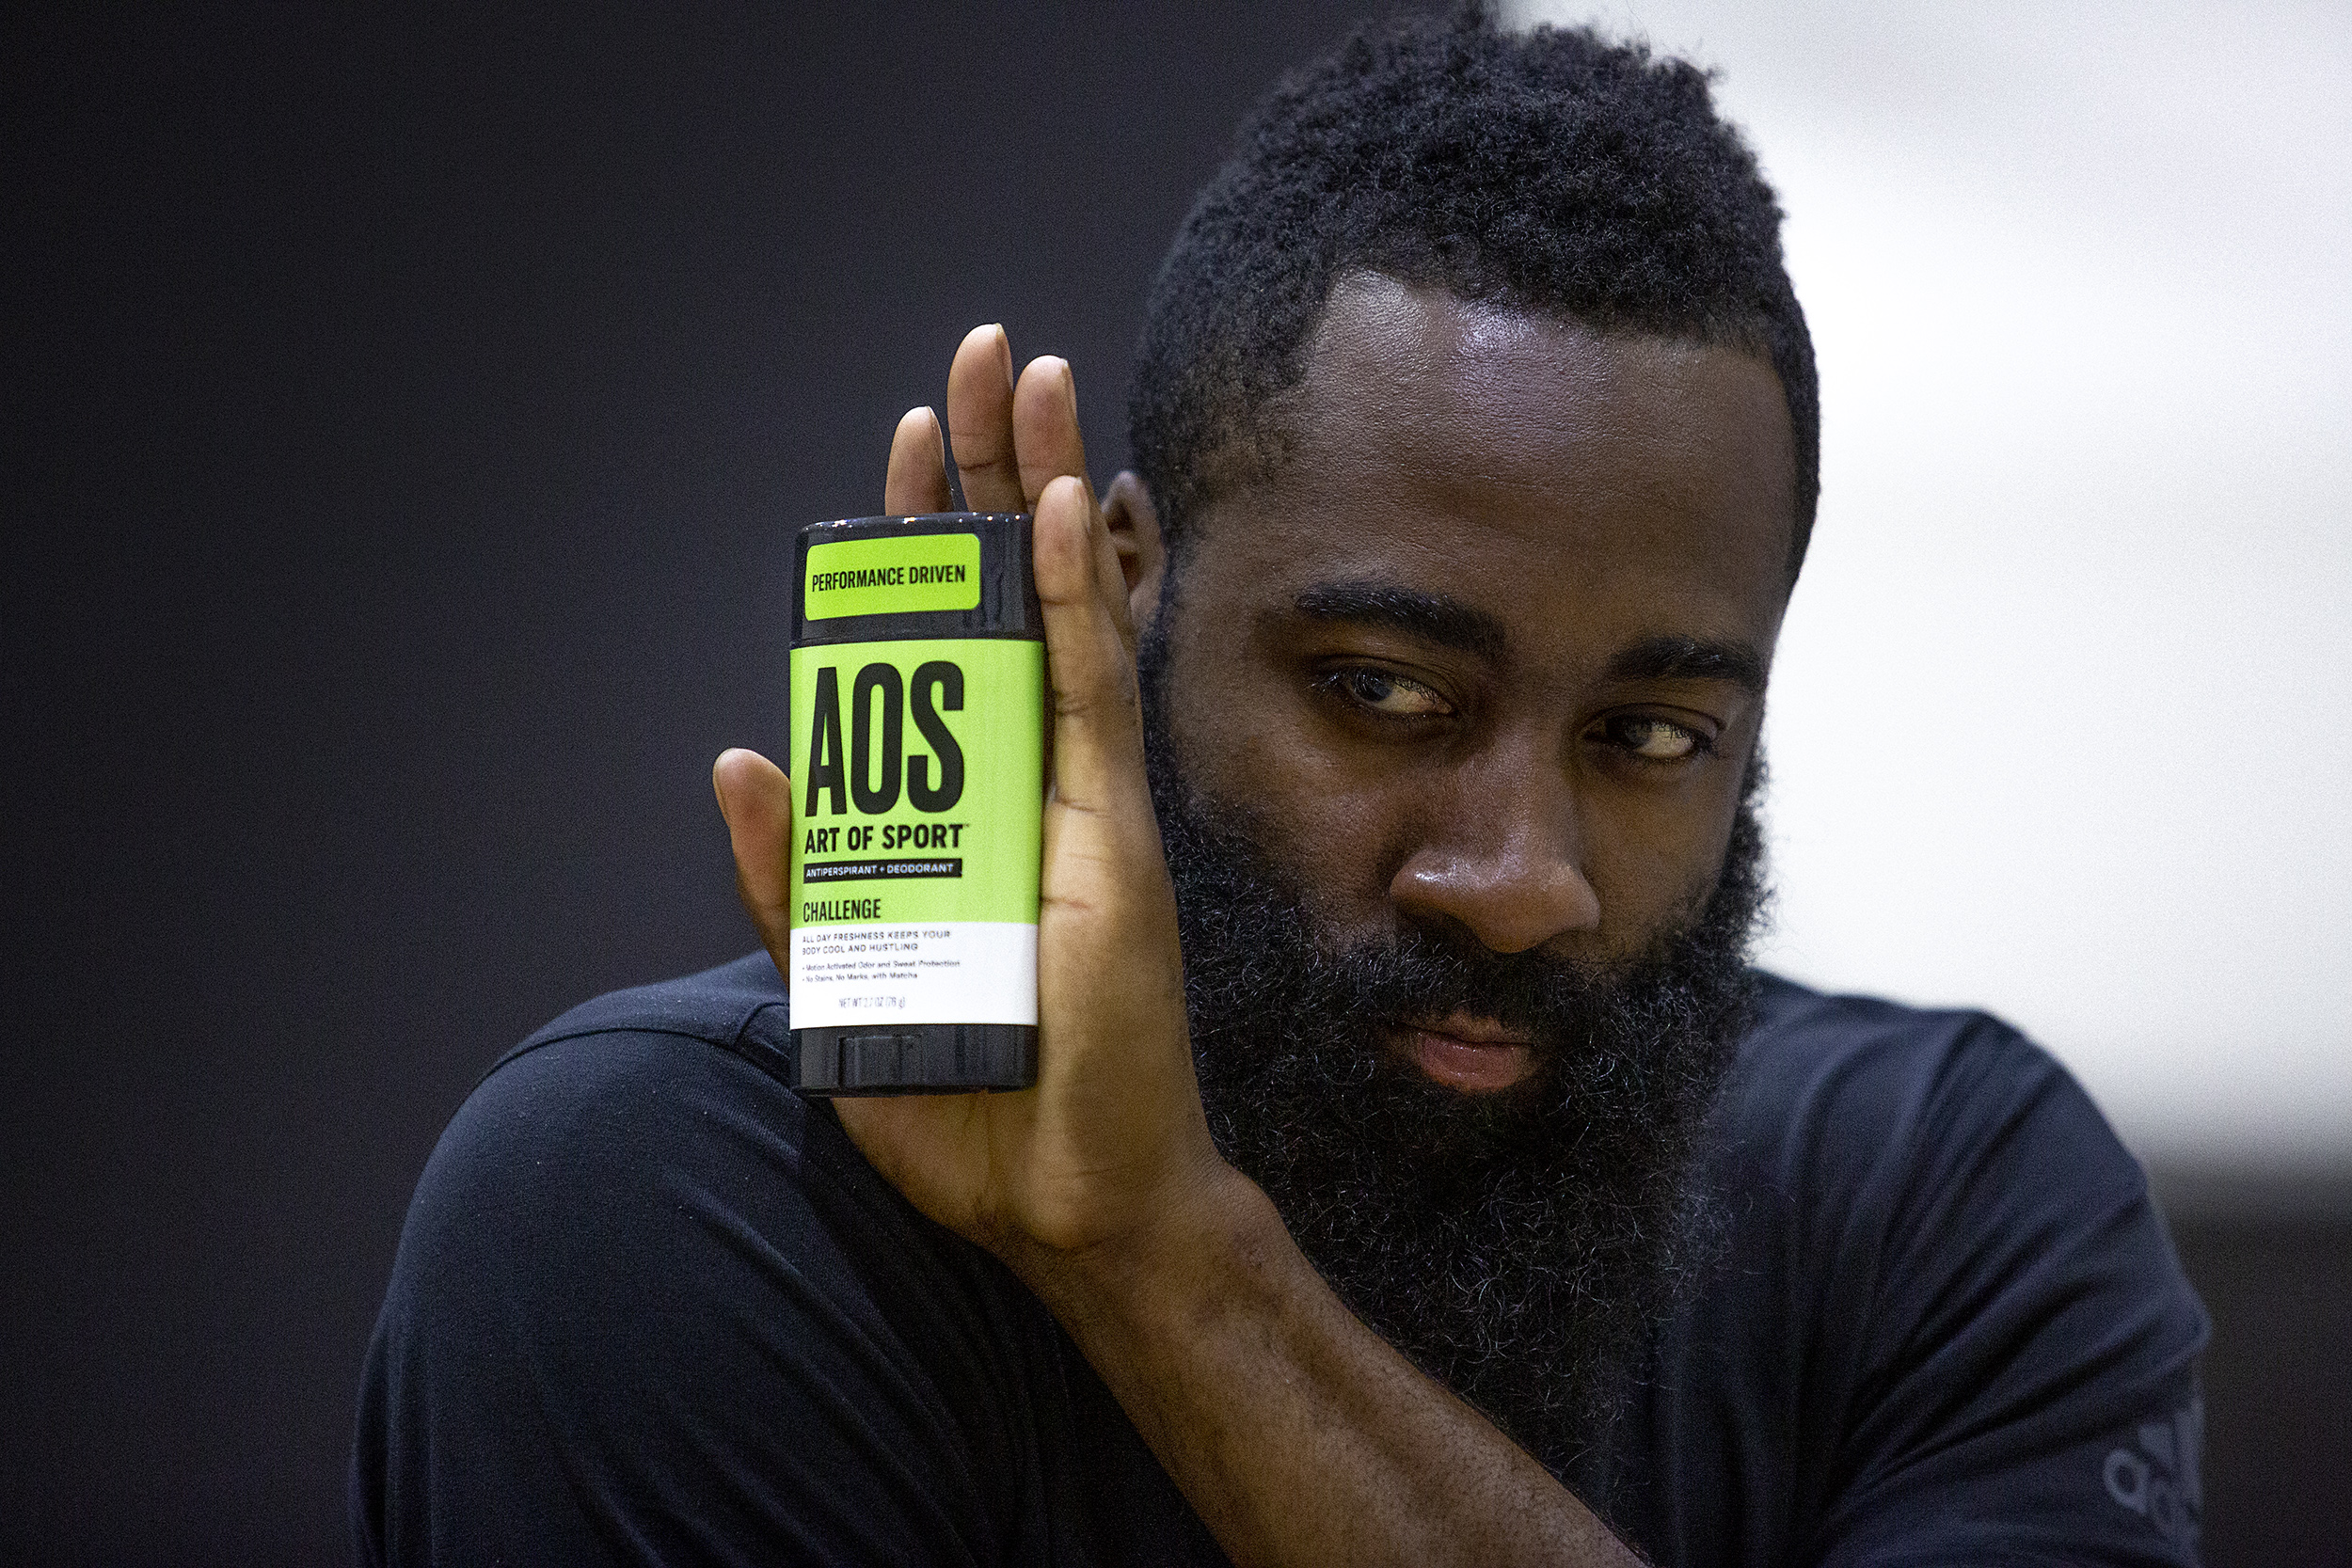 James_Harden_by_Terry_Snyder_10.jpg